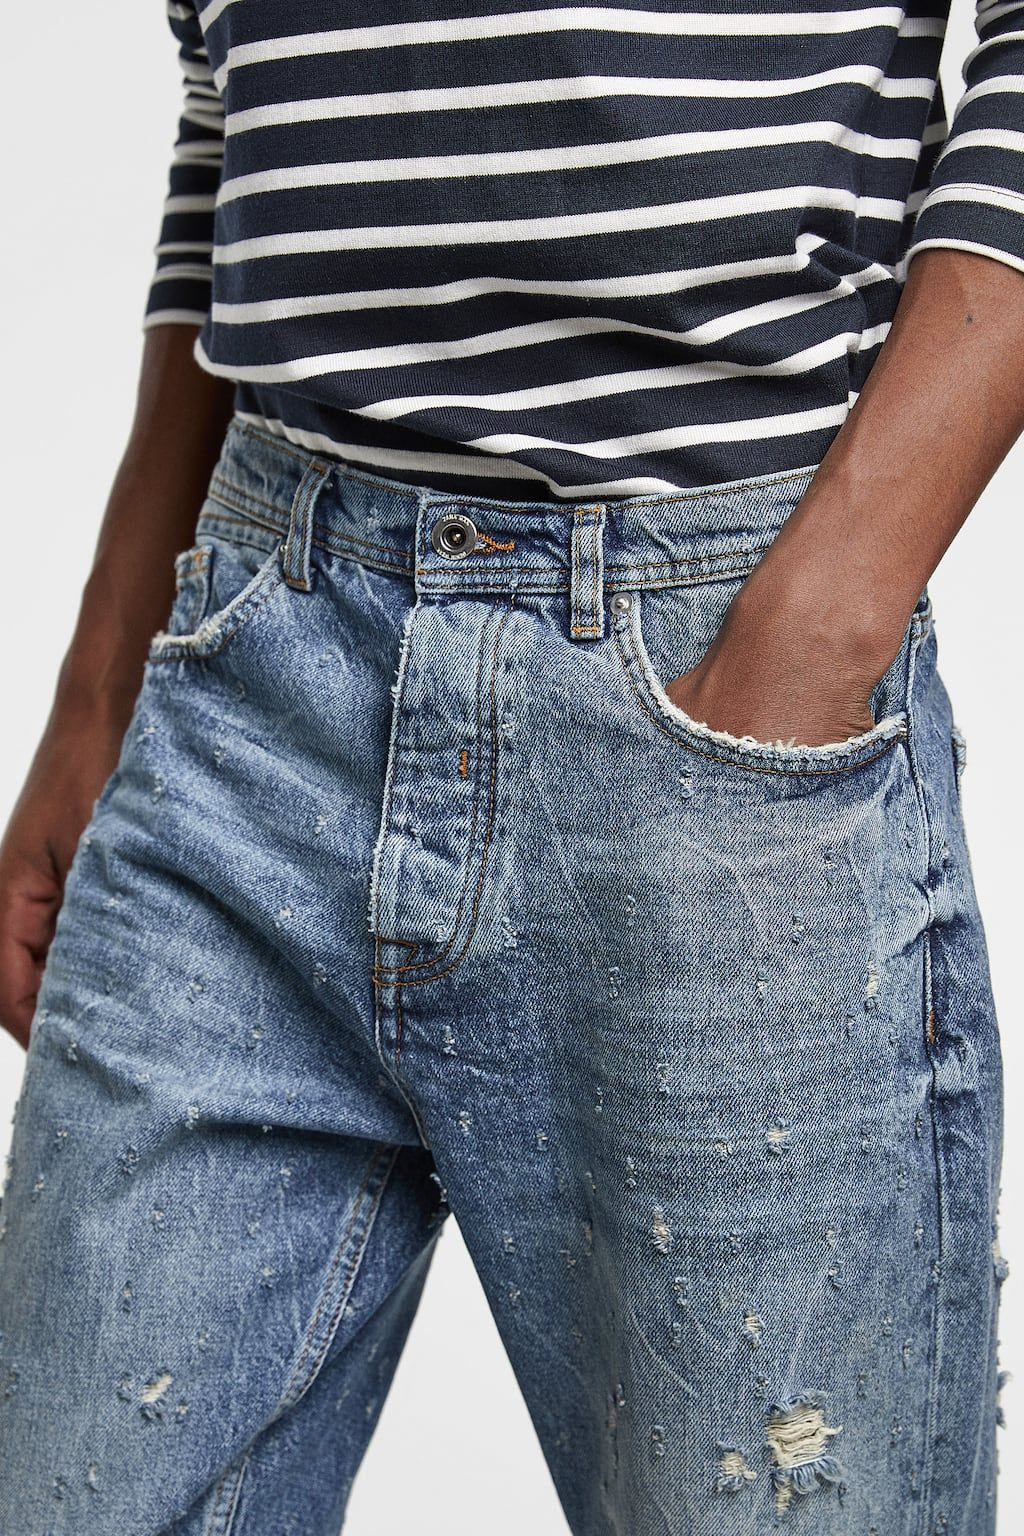 Image 5 of cropped loose fit jeans from zara with images